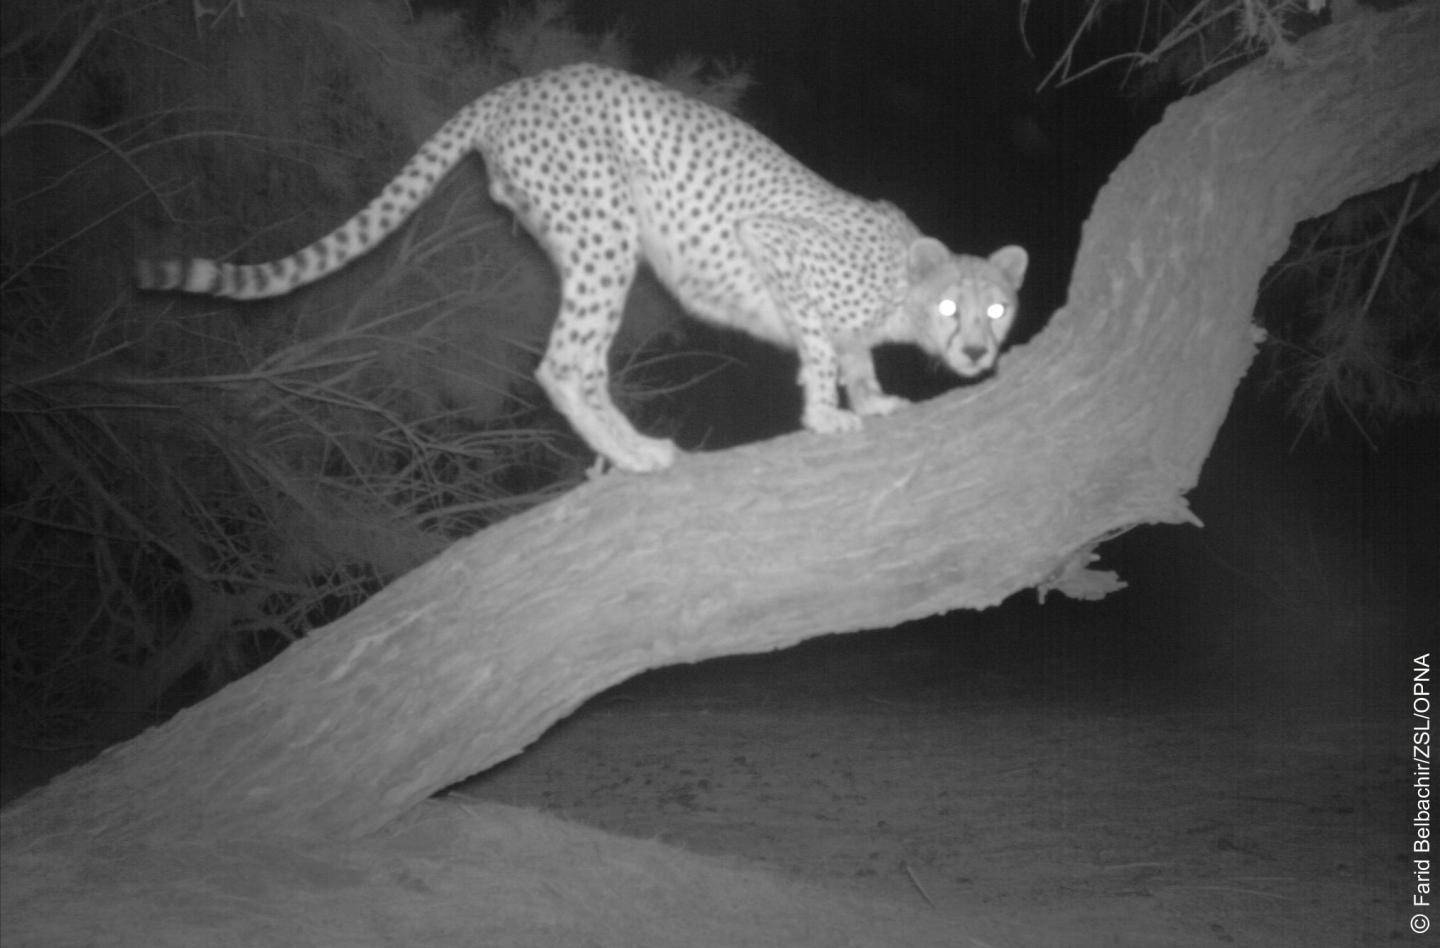 One of the world's rarest large cats, the Saharan cheetah, caught on film!